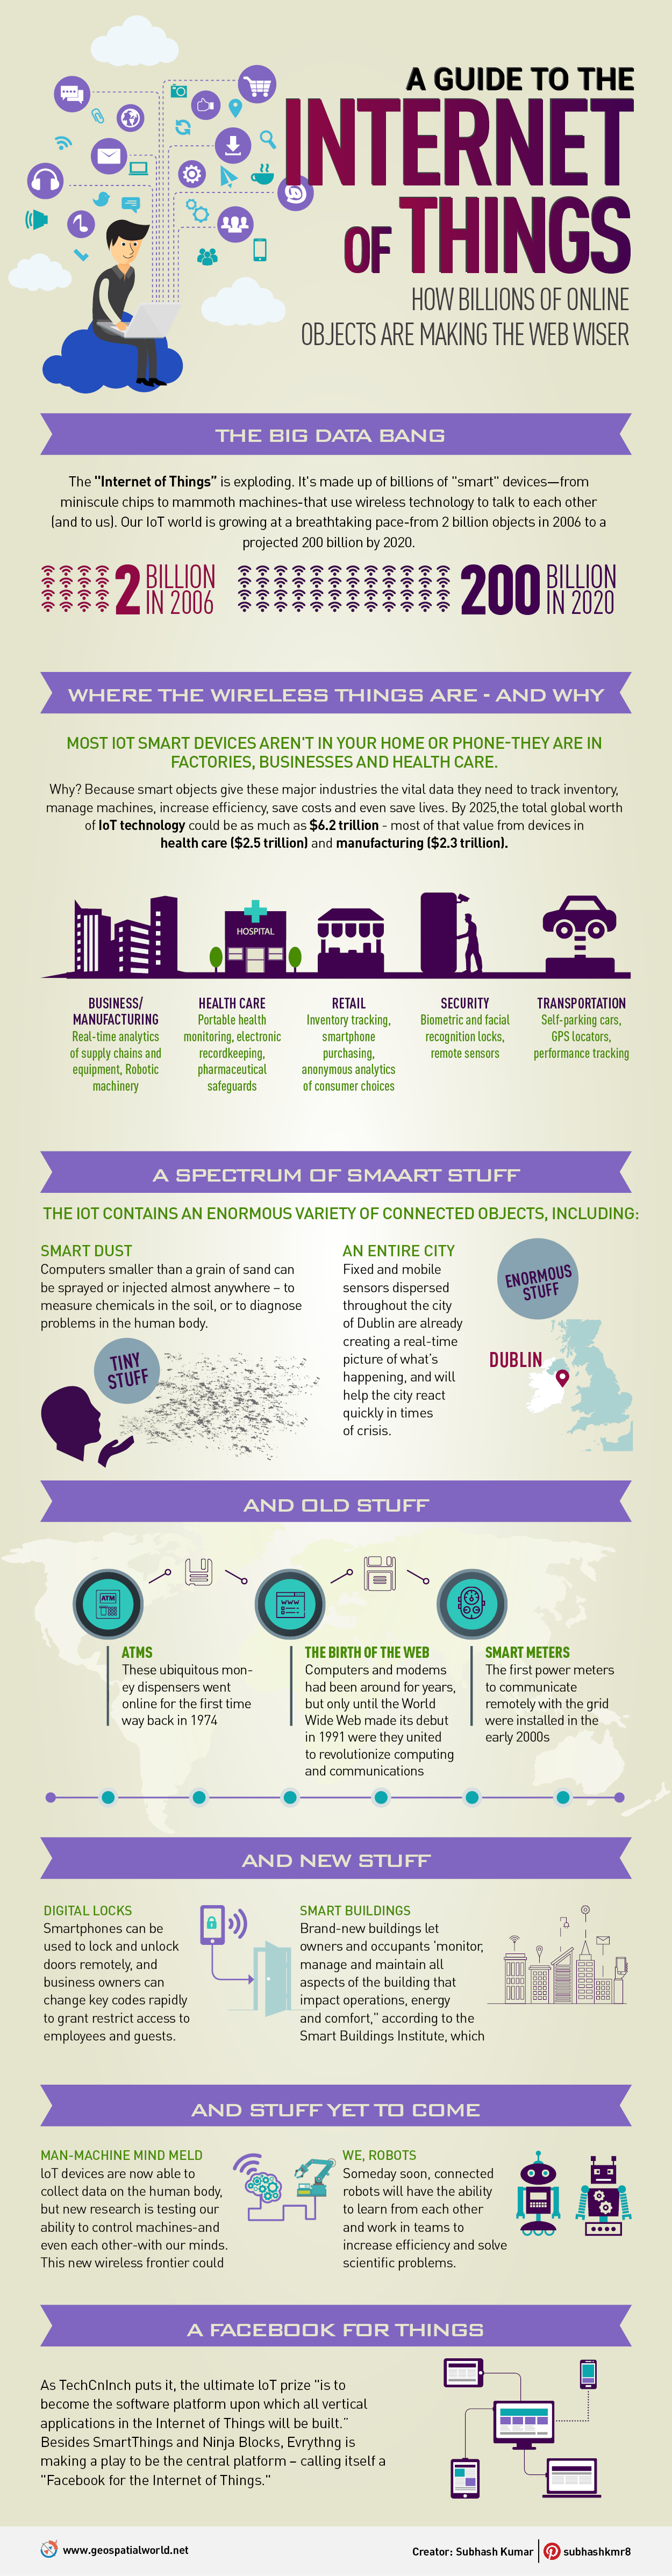 Infographic on internet of things not, location, geospatial